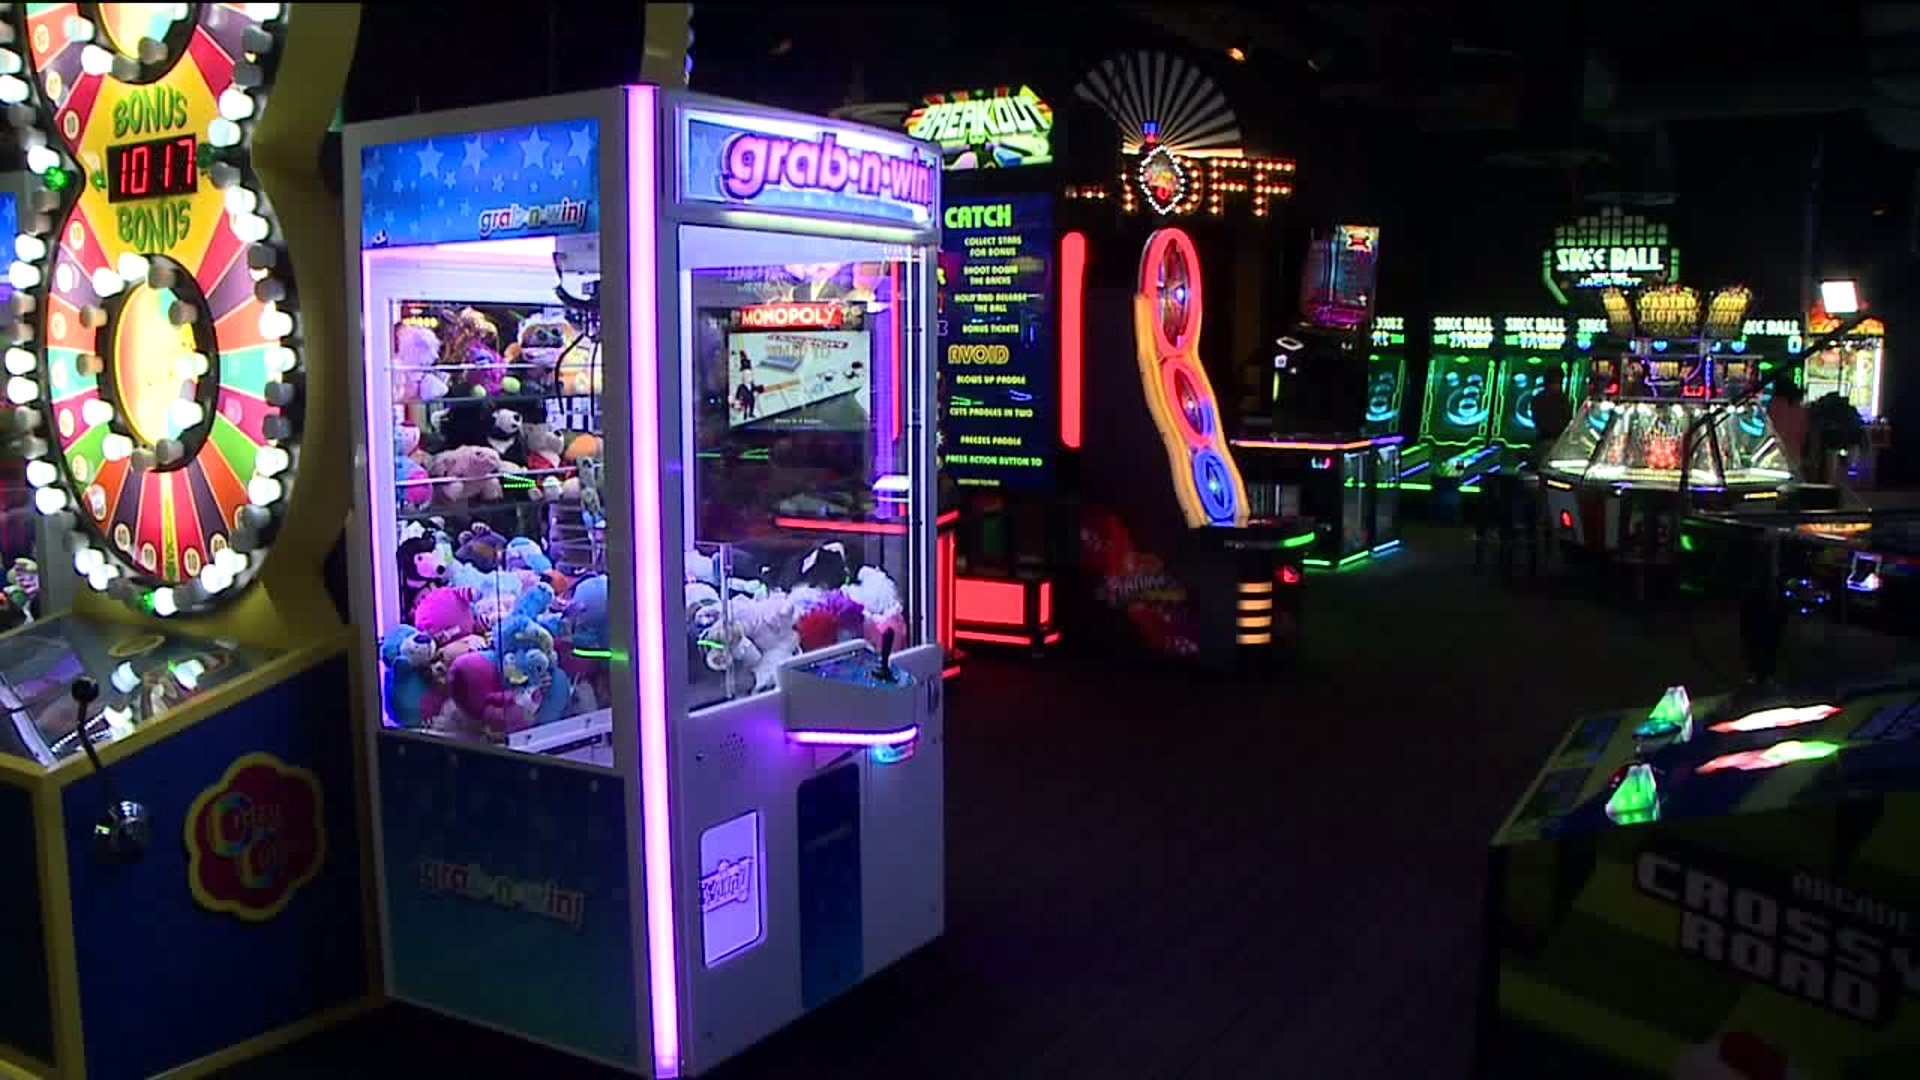 For the Win Arcade